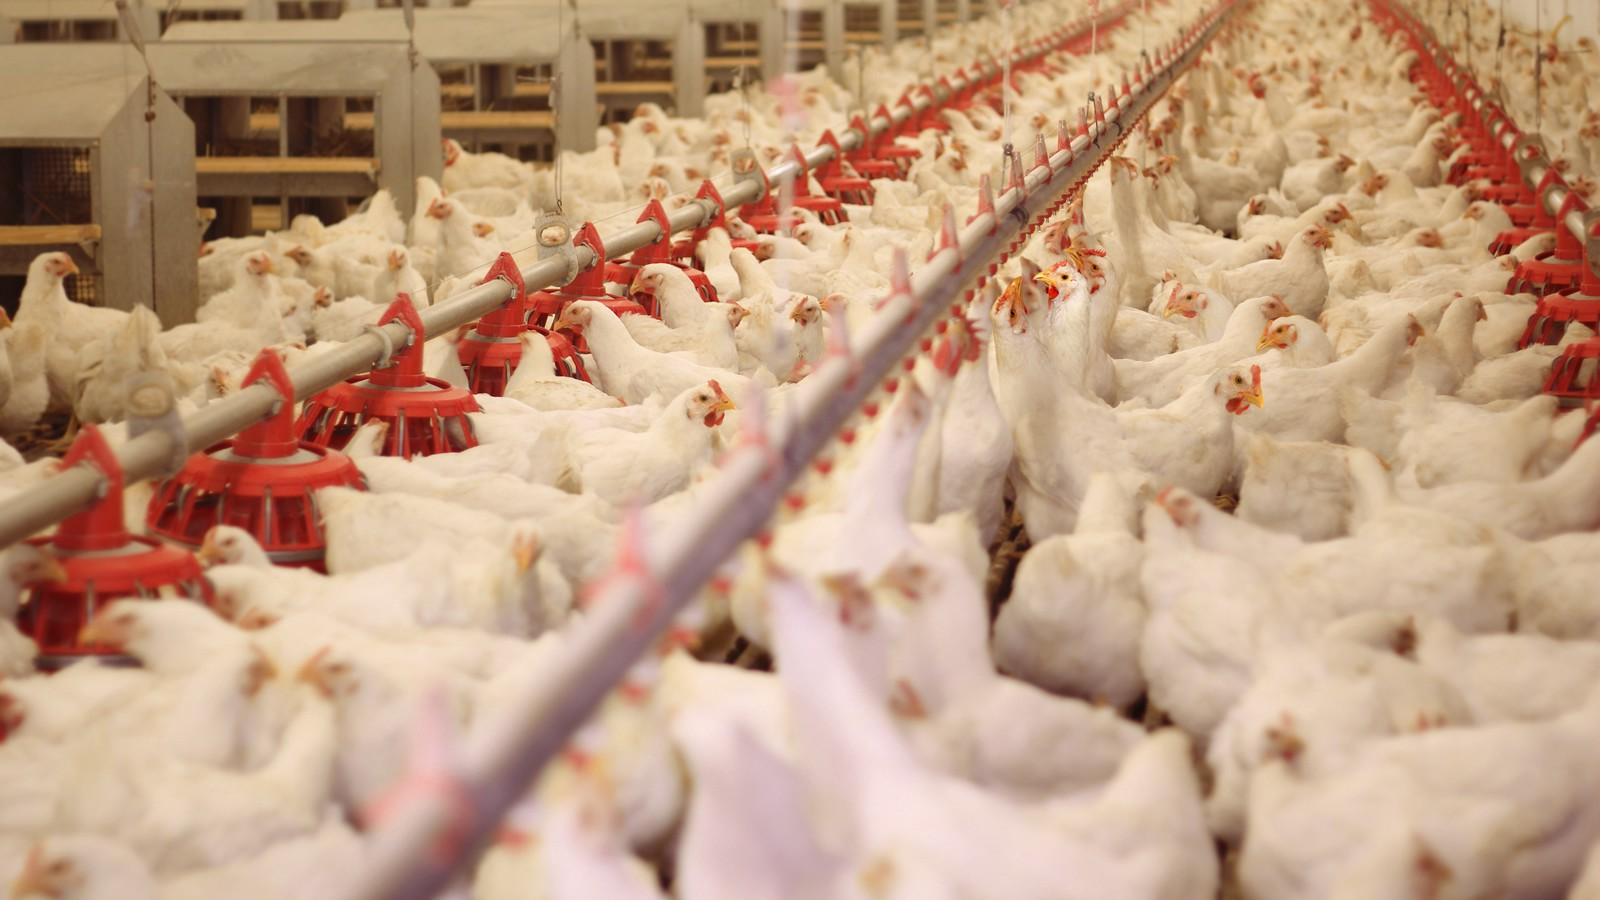 The rise of chickens raised without medically important